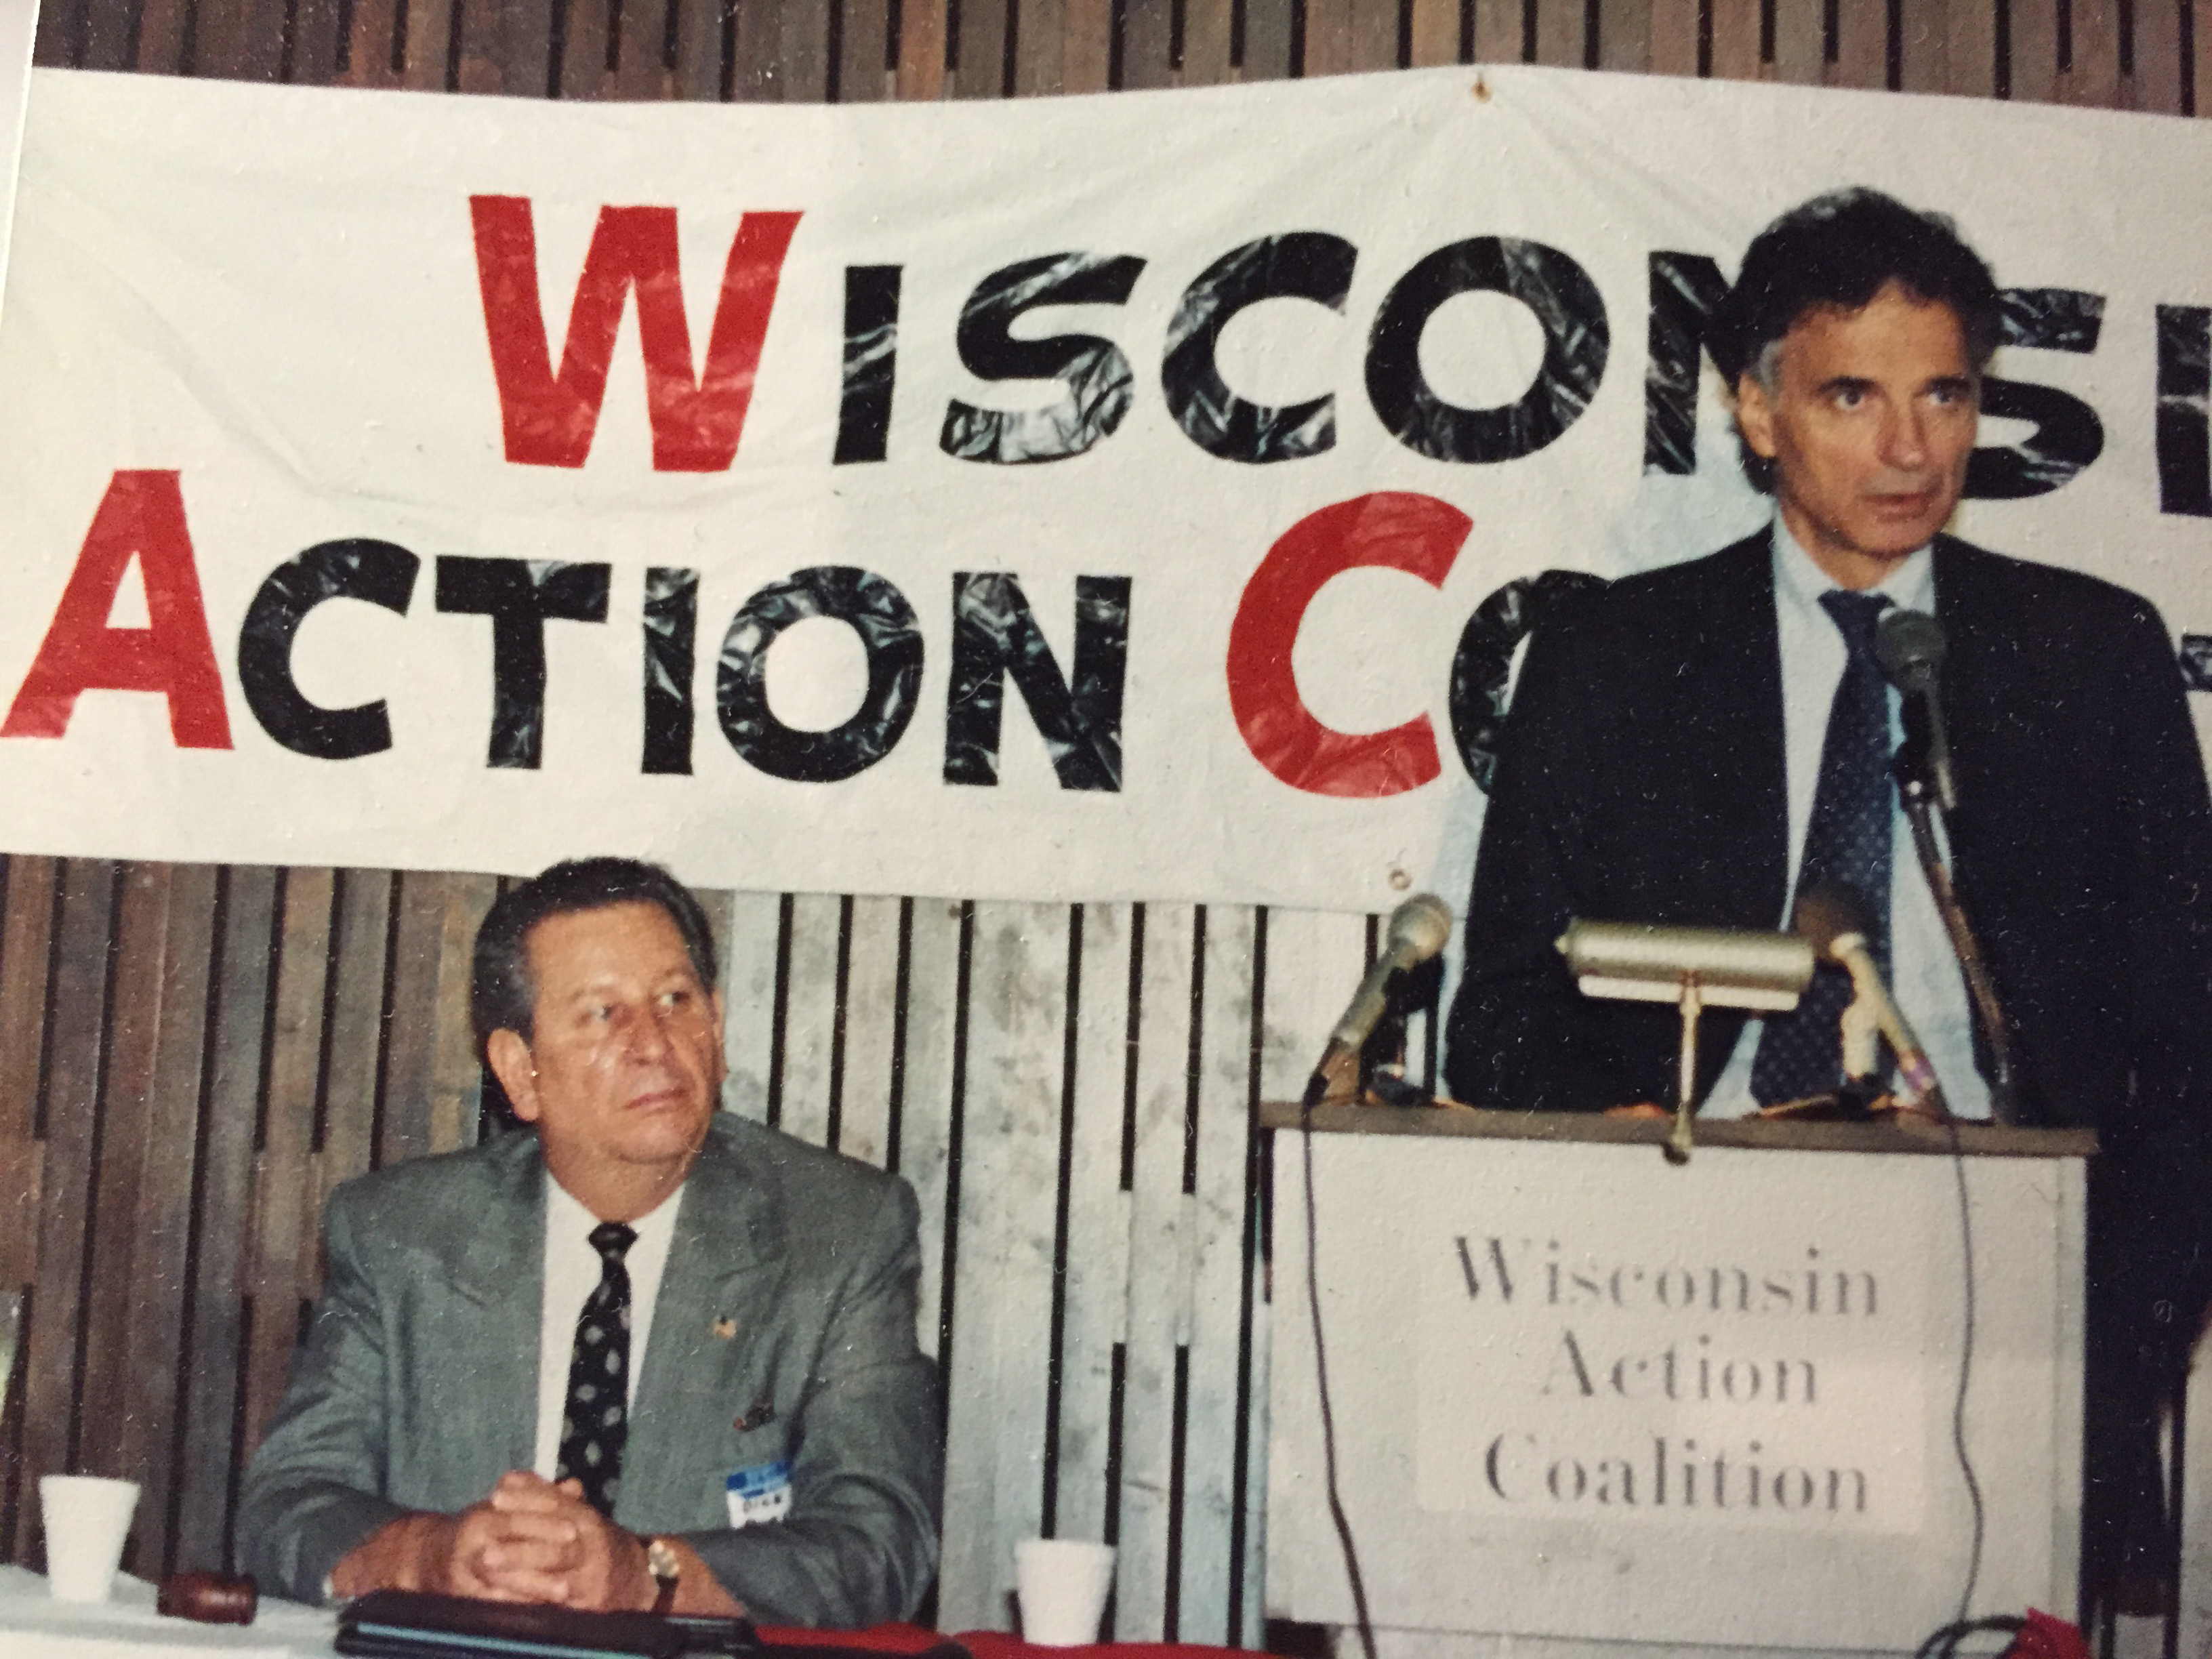 Dick Presser (left) is joined by Ralph Nadar at a Wisconsin Action Coalition meeting,